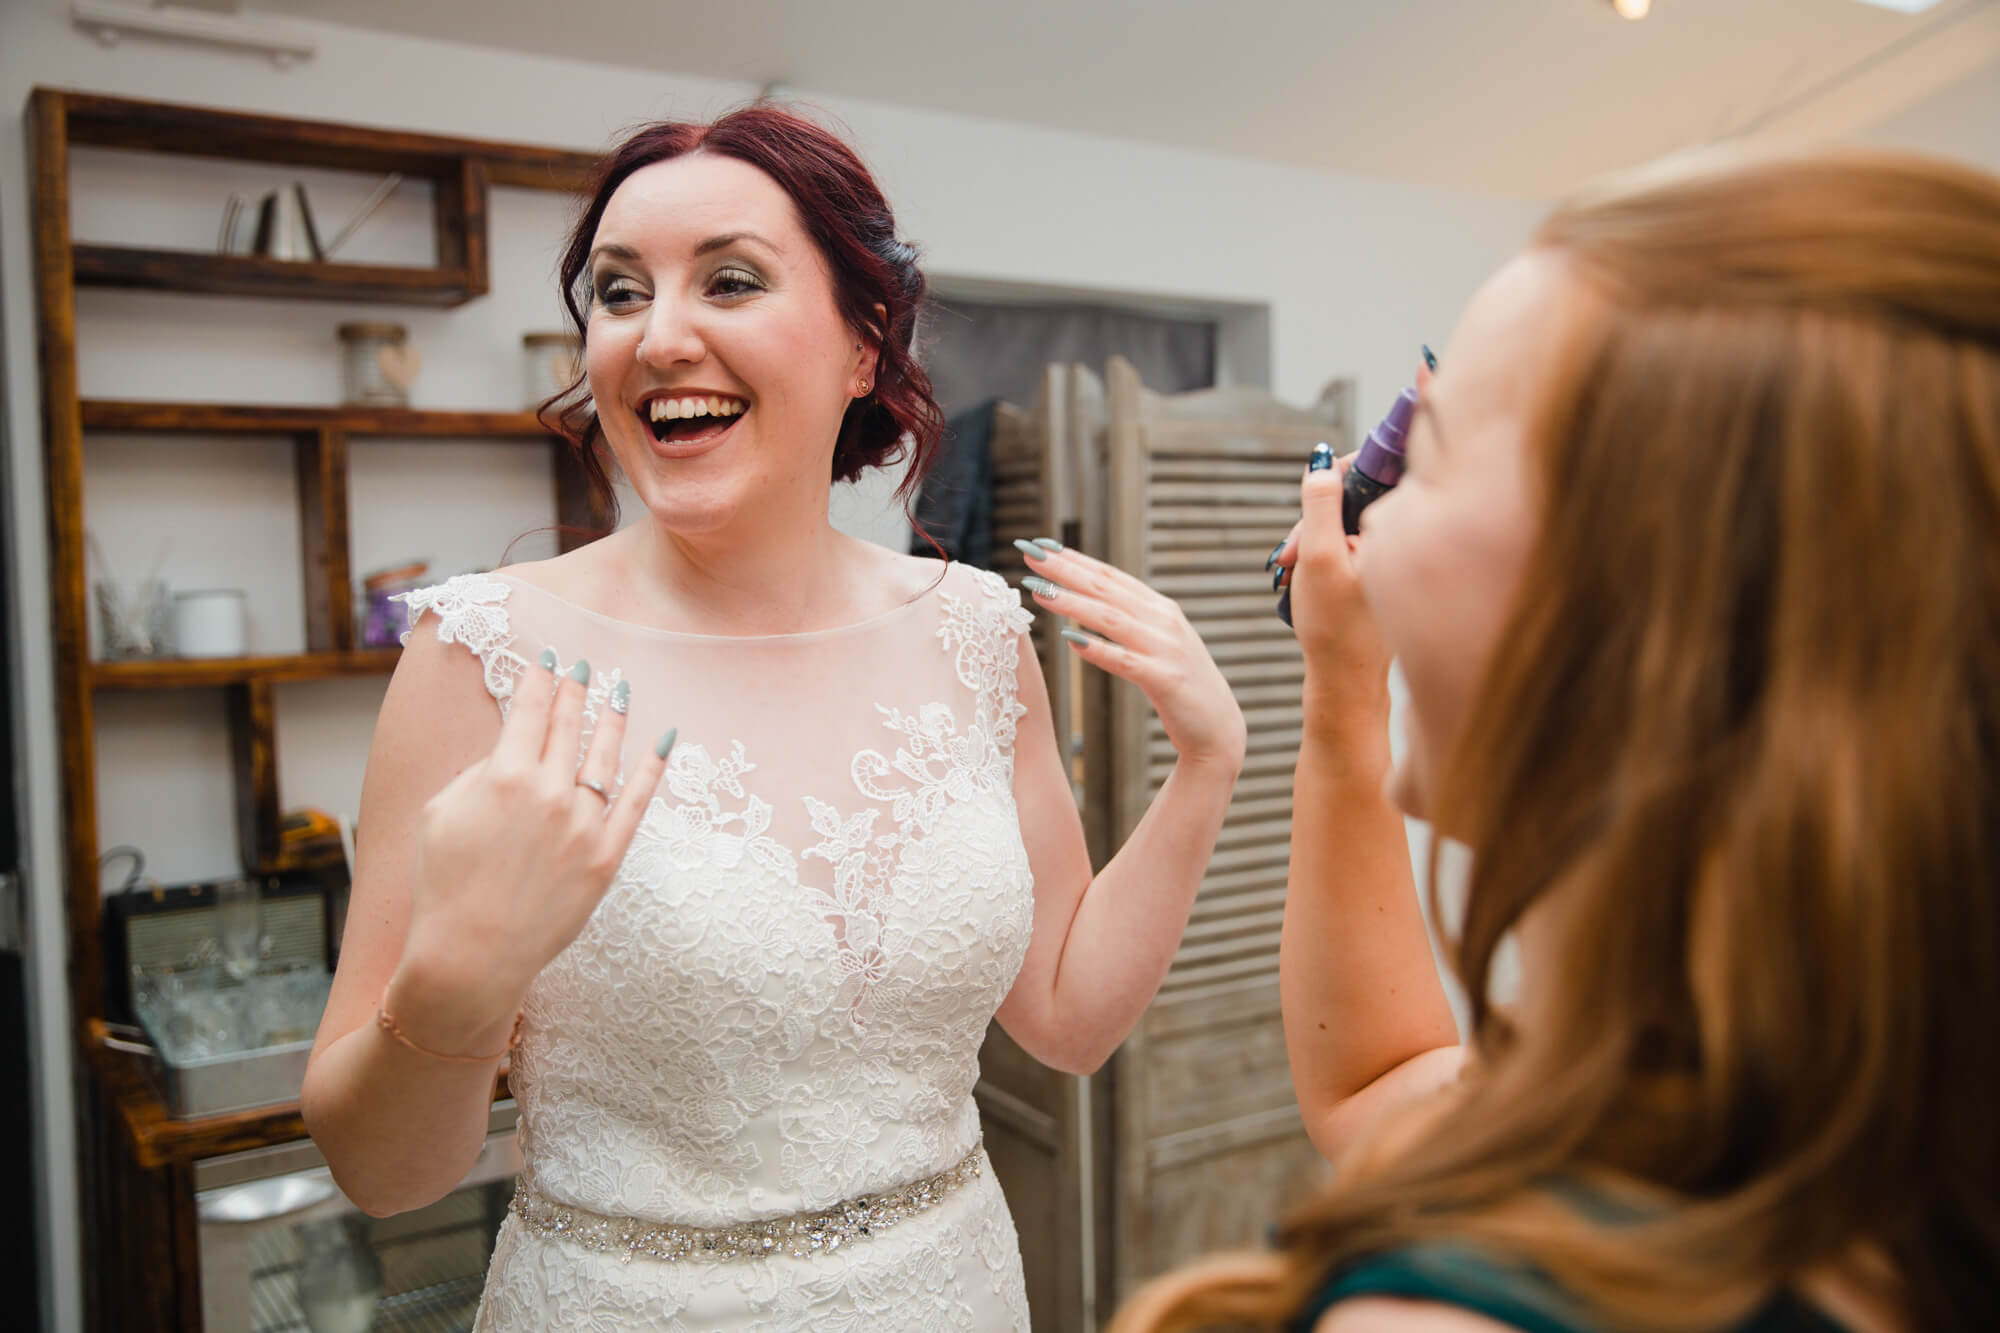 candid portrait photograph bride laughing with bridesmaids while putting on wedding dress before ceremony